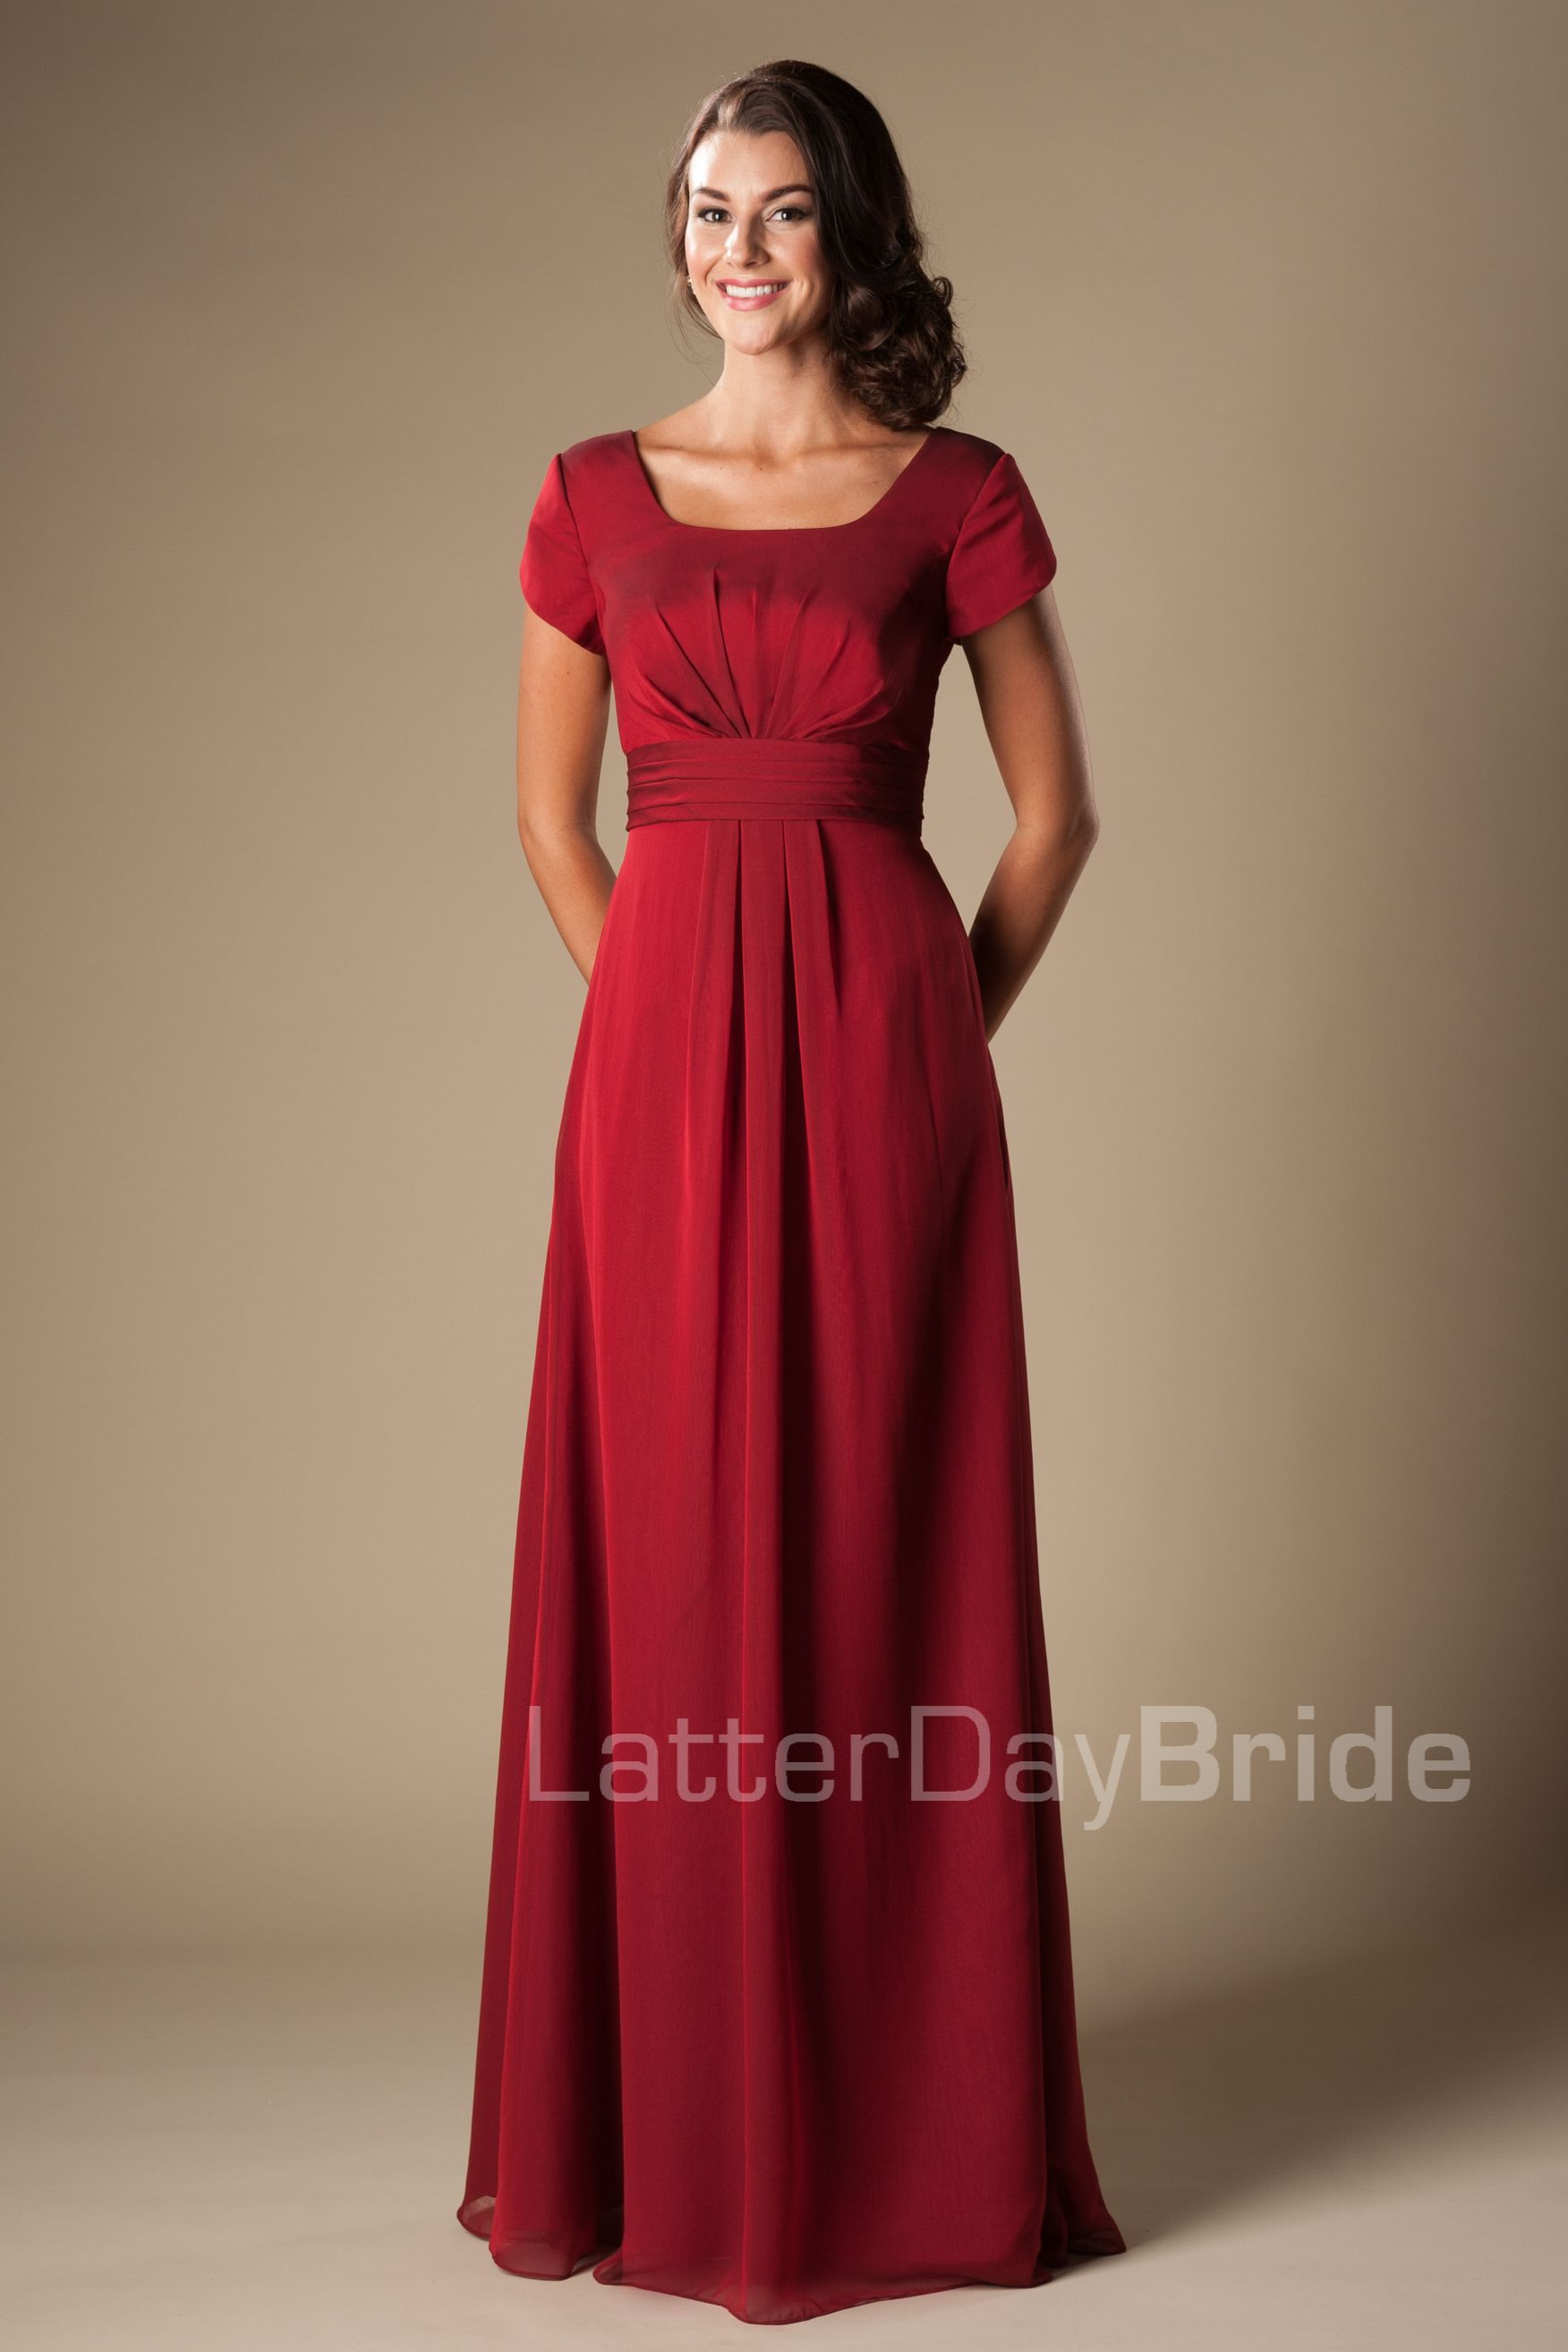 Connor a beautiful long modest bridesmaid dress wedding connor a beautiful long modest bridesmaid dress ombrellifo Images